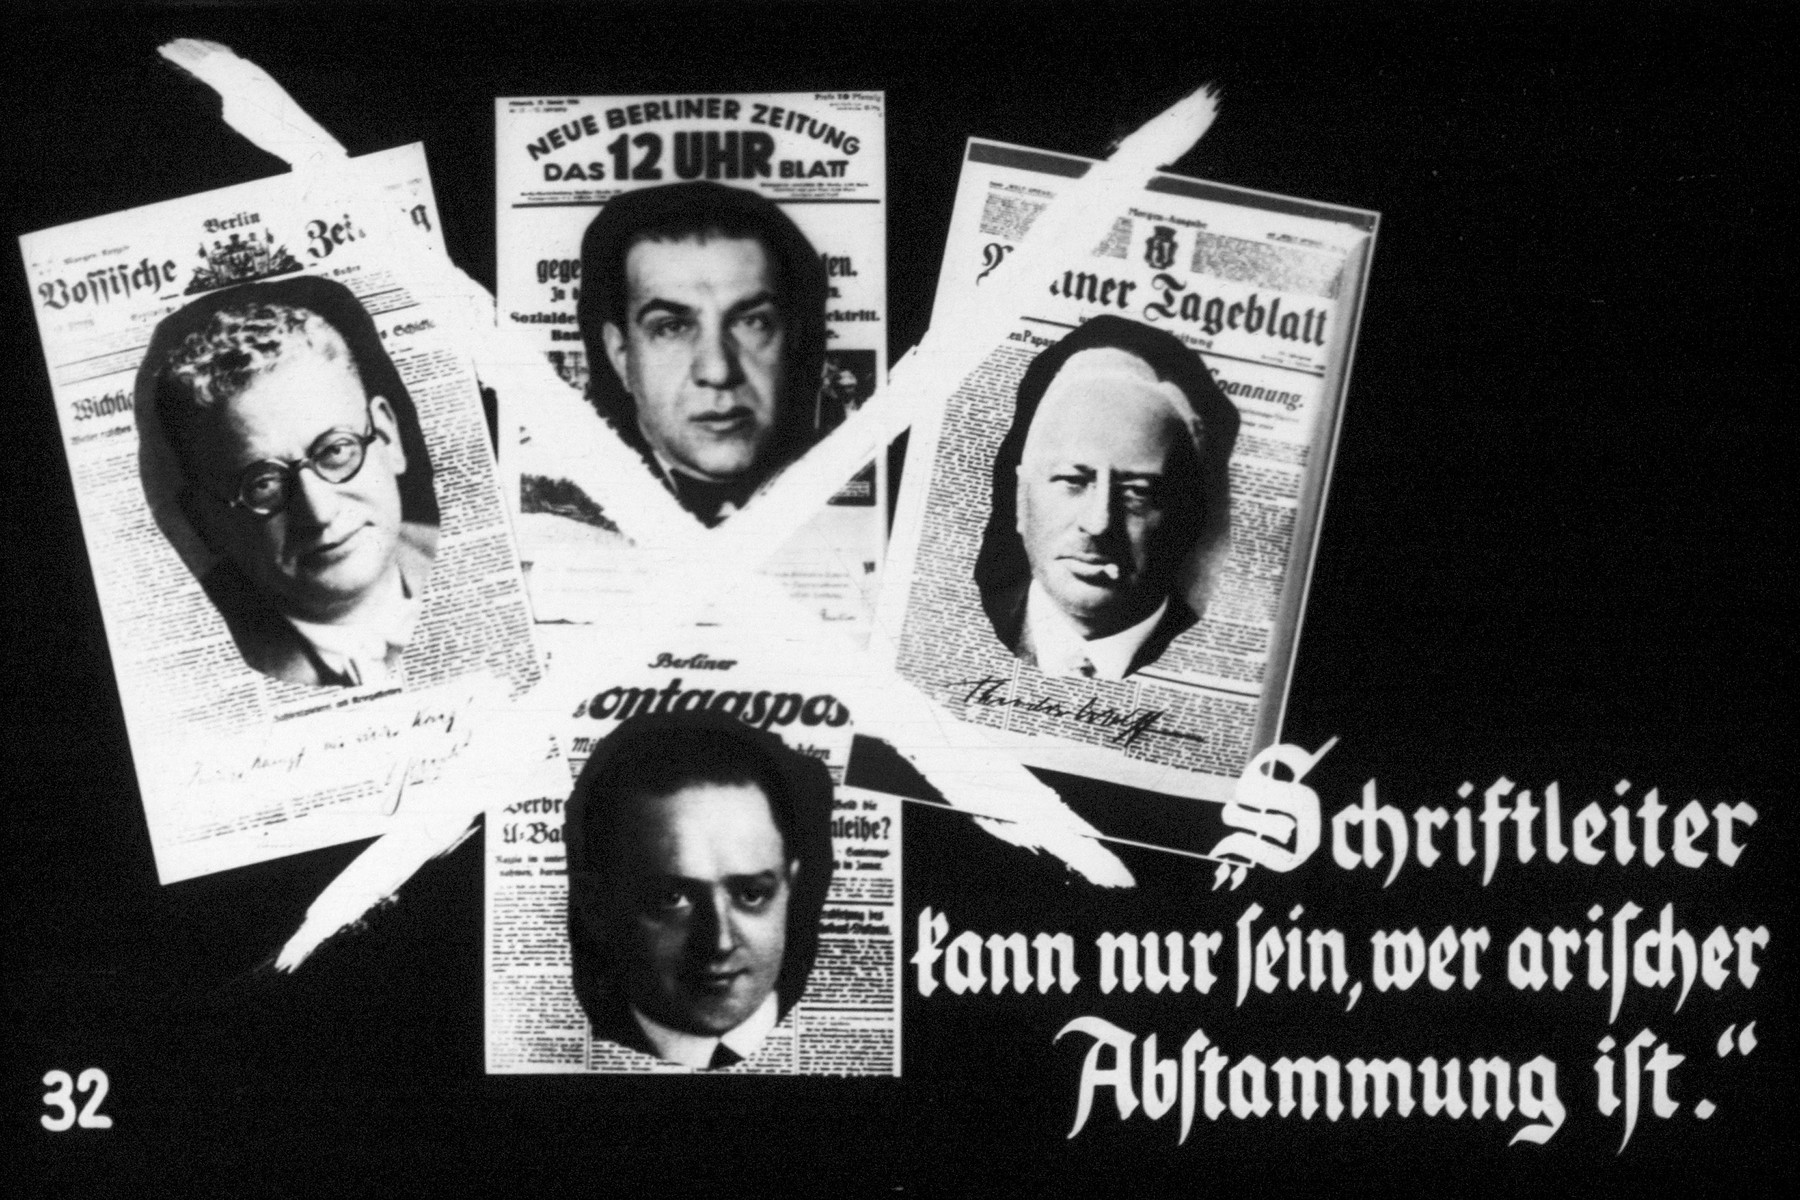 """32nd Nazi propaganda slide of a Hitler Youth educational presentation entitled """"Germany Overcomes Jewry.""""  """"Schriftleiter kann nur sein, wer arischer Abstammung ist."""" // Writers (authors) can only be of Aryan descent"""